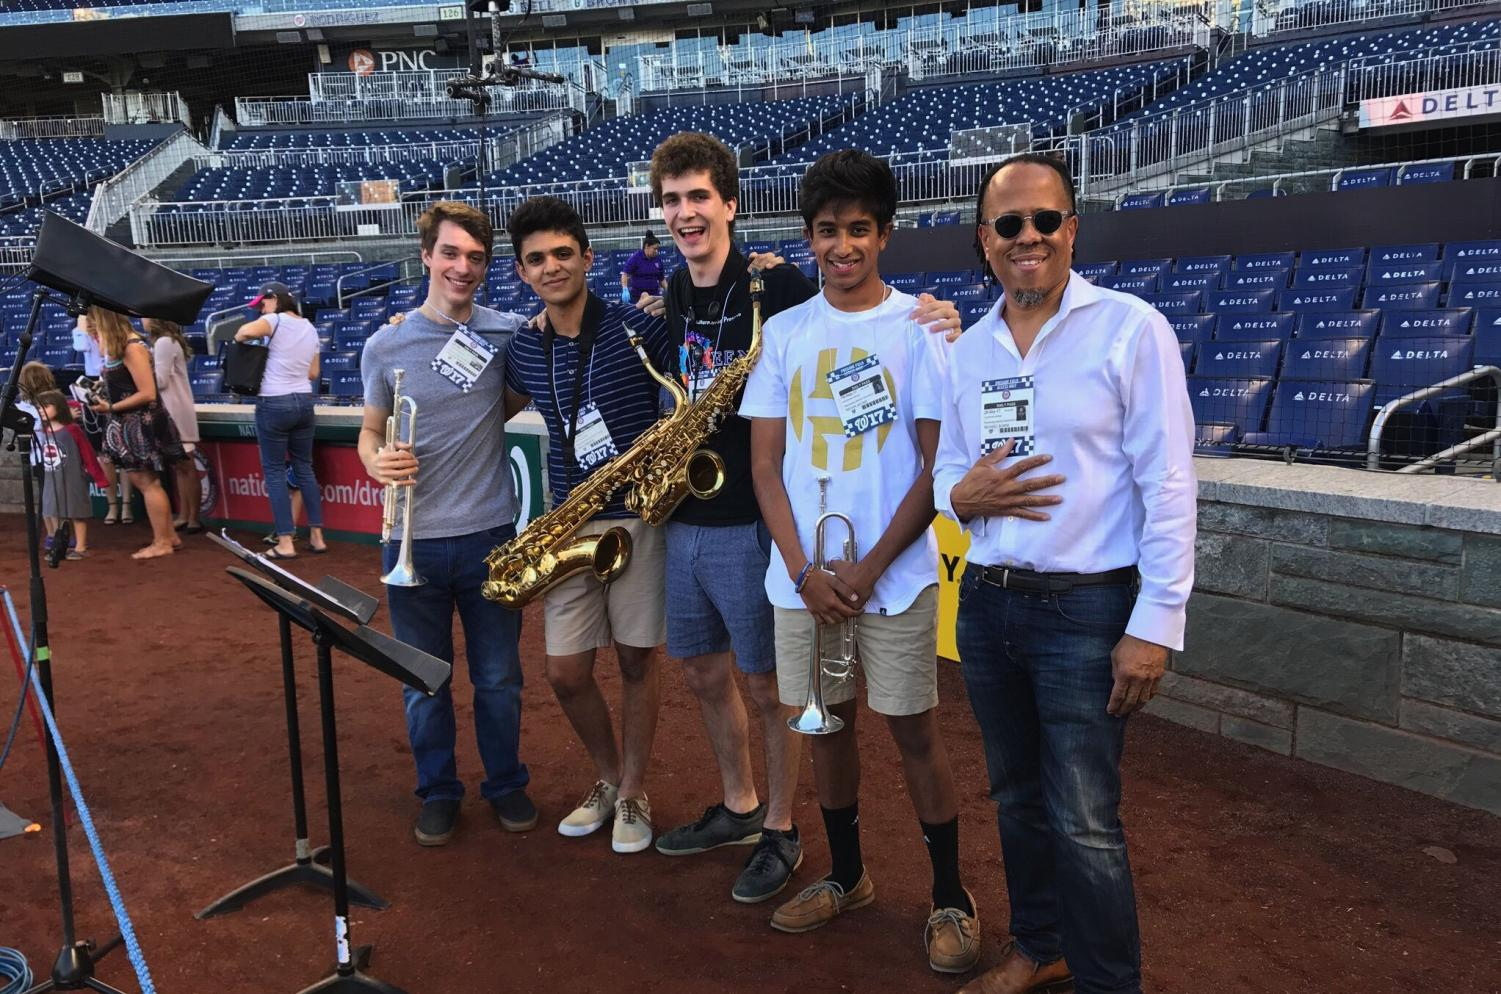 Seniors Patrick Wright (far left) and Ethan Dodd (center) played the national anthem at the Nationals game Sept. 28 in a quartet. Blues Alley Youth Orchestra and director Michael Bowie (far right) organized the jazz arrangement. Photo courtesy Patrick Wright.